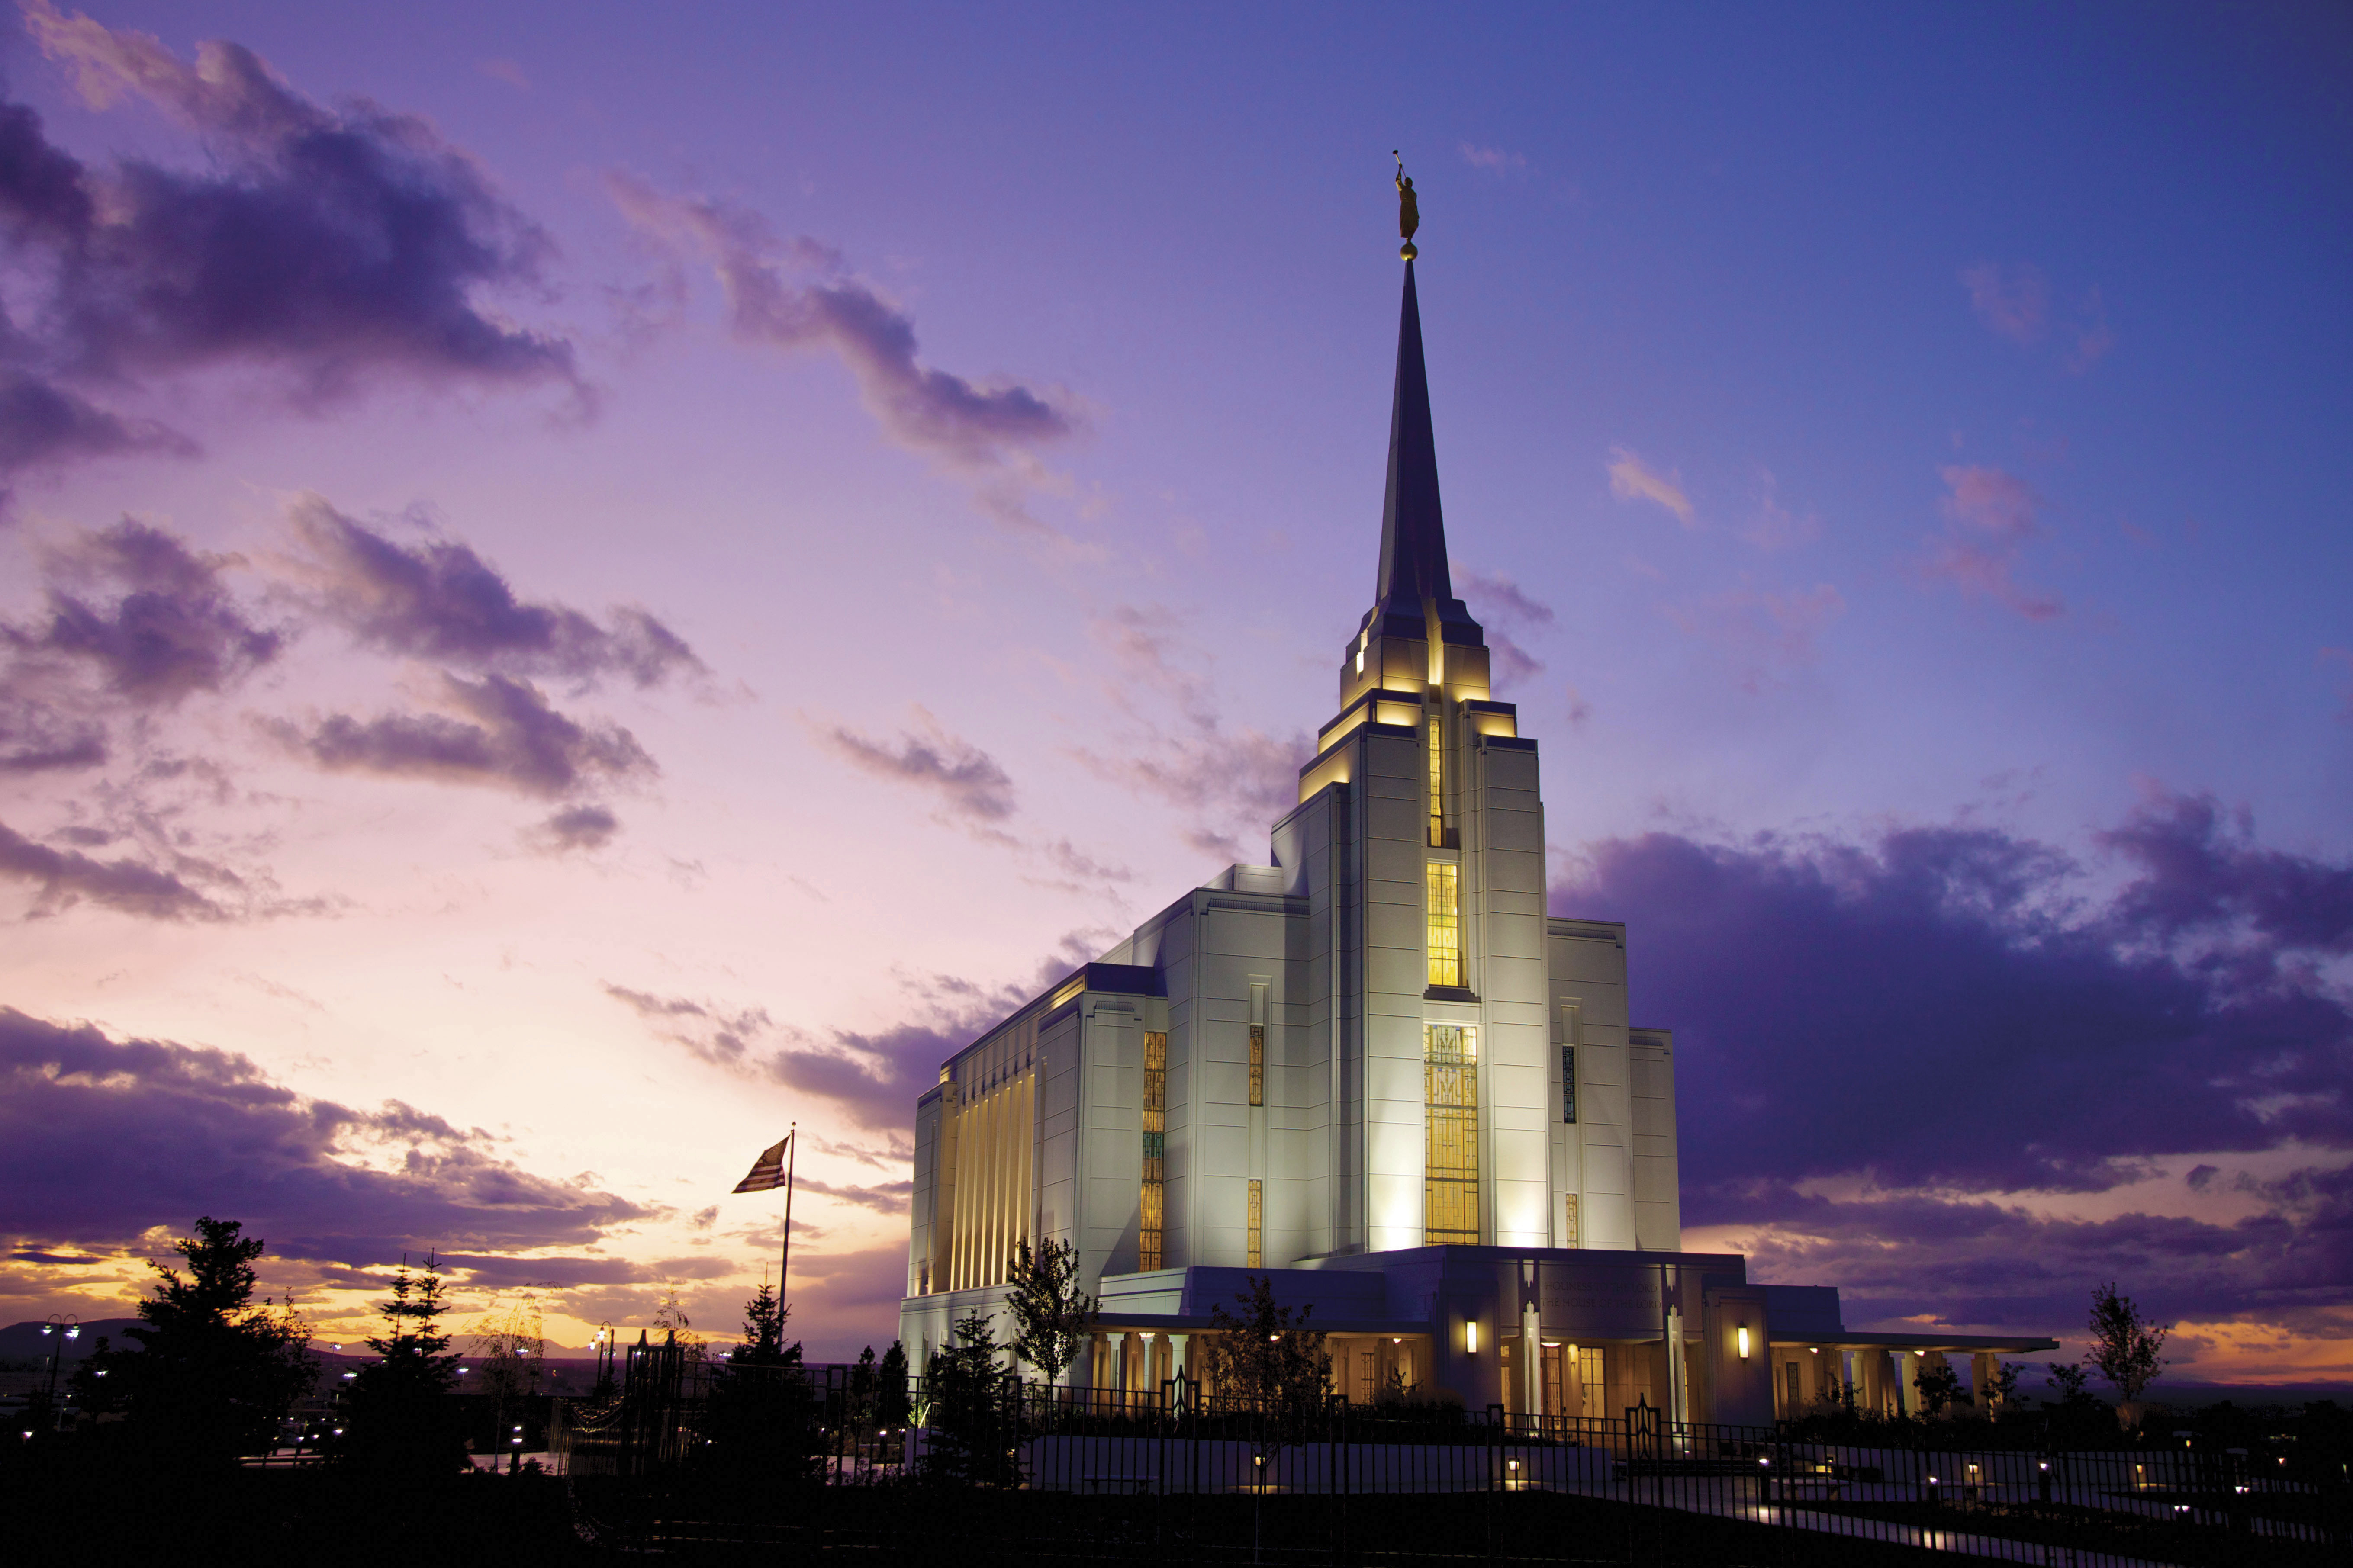 The Rexburg Idaho Temple in the evening, including scenery and clouds.